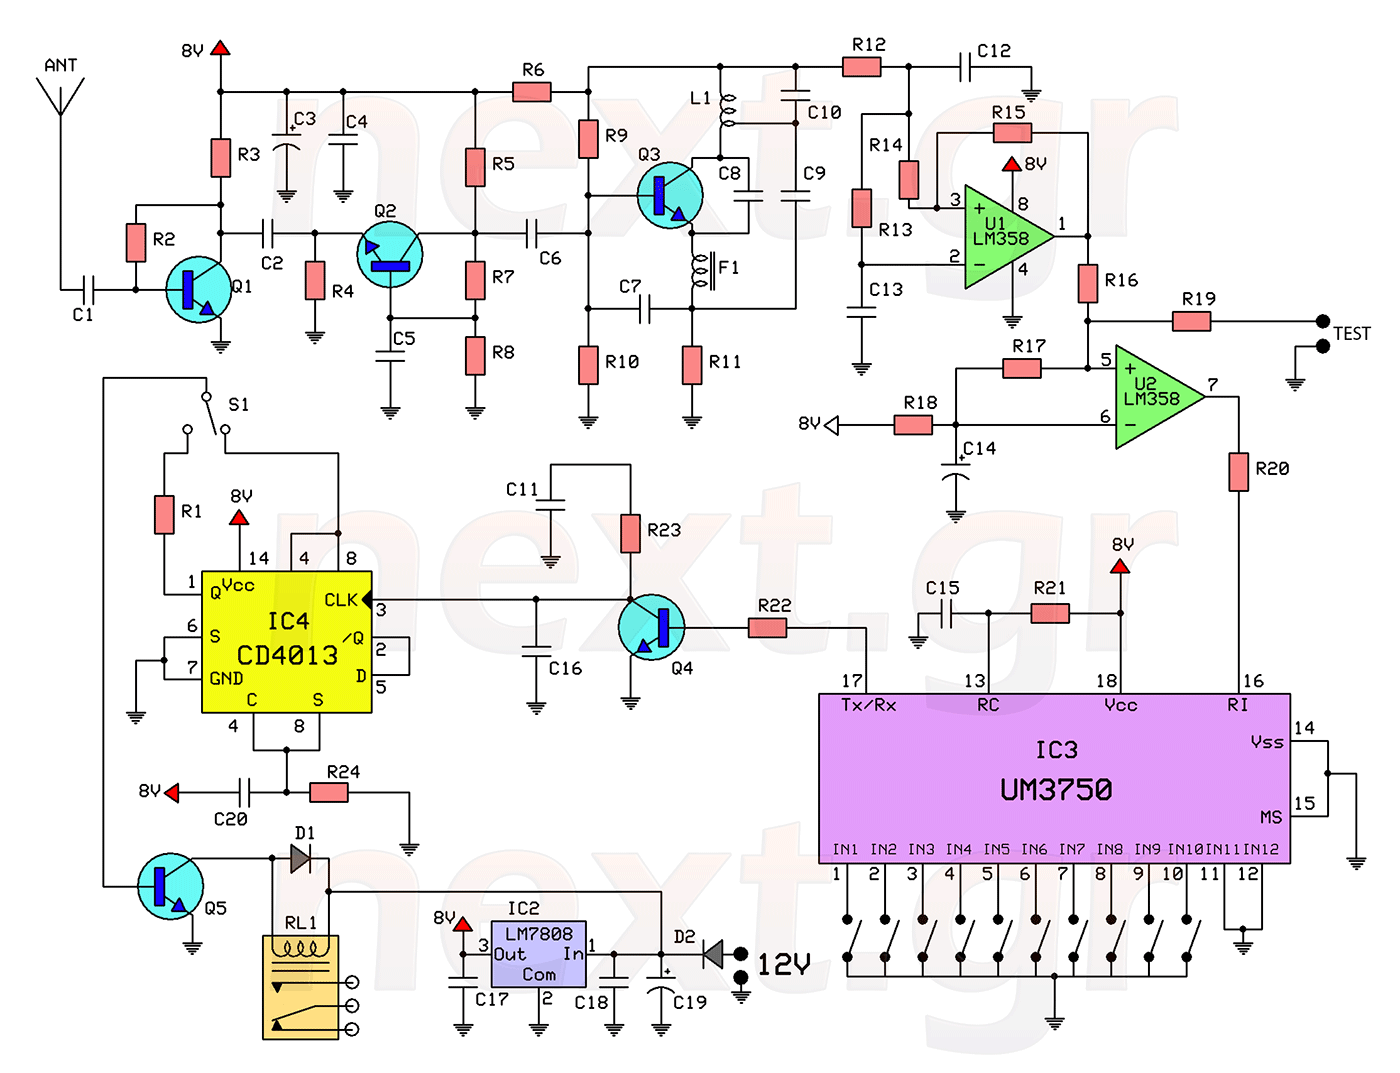 rf tx and rx circuit diagram 2000 mitsubishi galant stereo wiring remote control automation circuits next gr